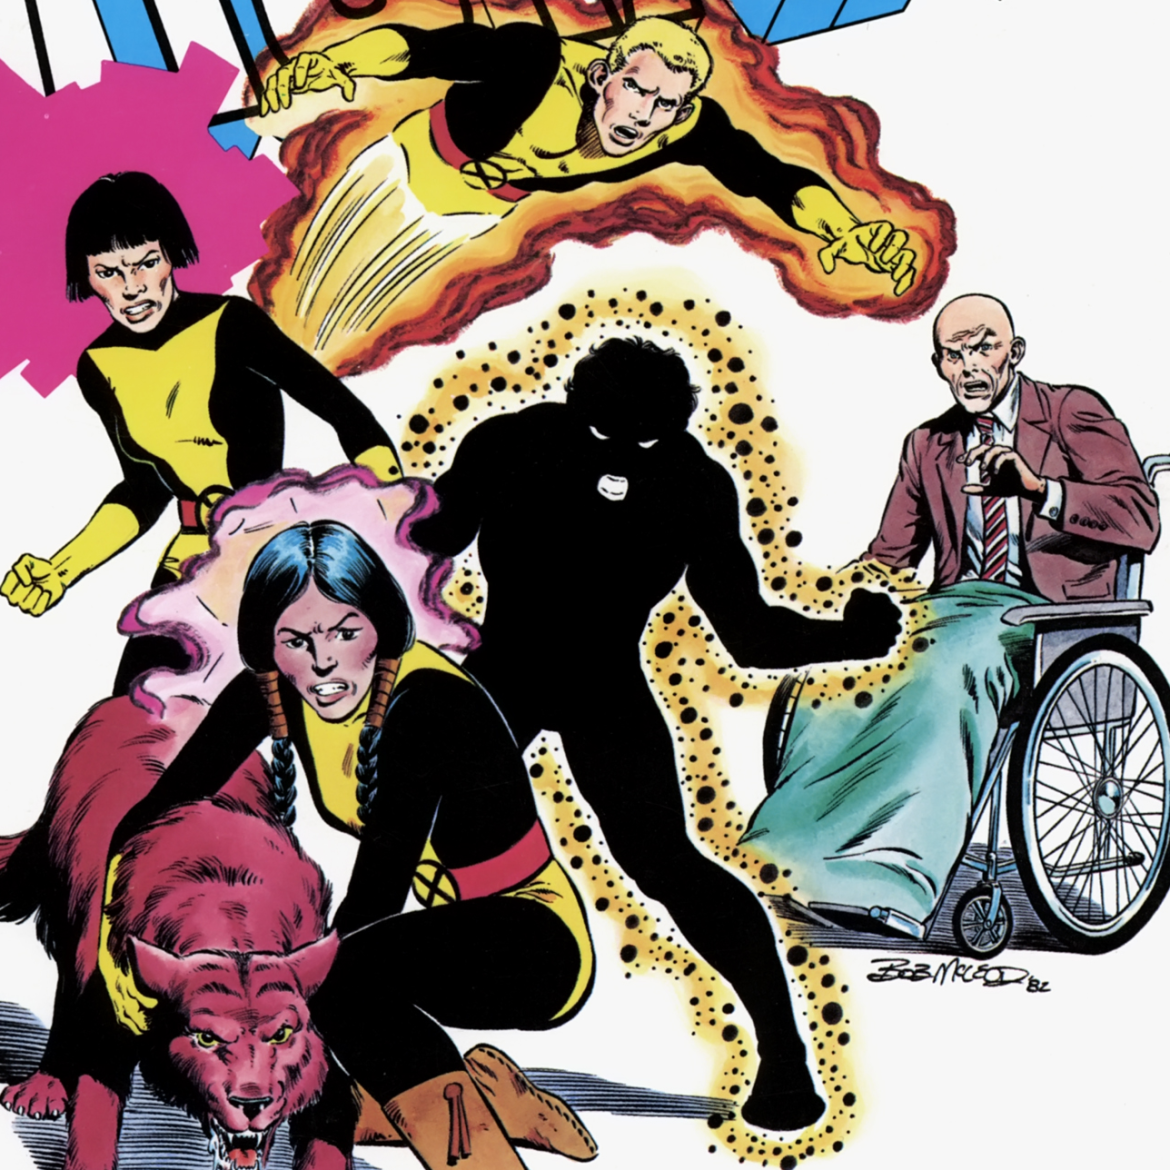 Marvel Graphic Novel #4: The New Mutants – Reviews Of Old Comics